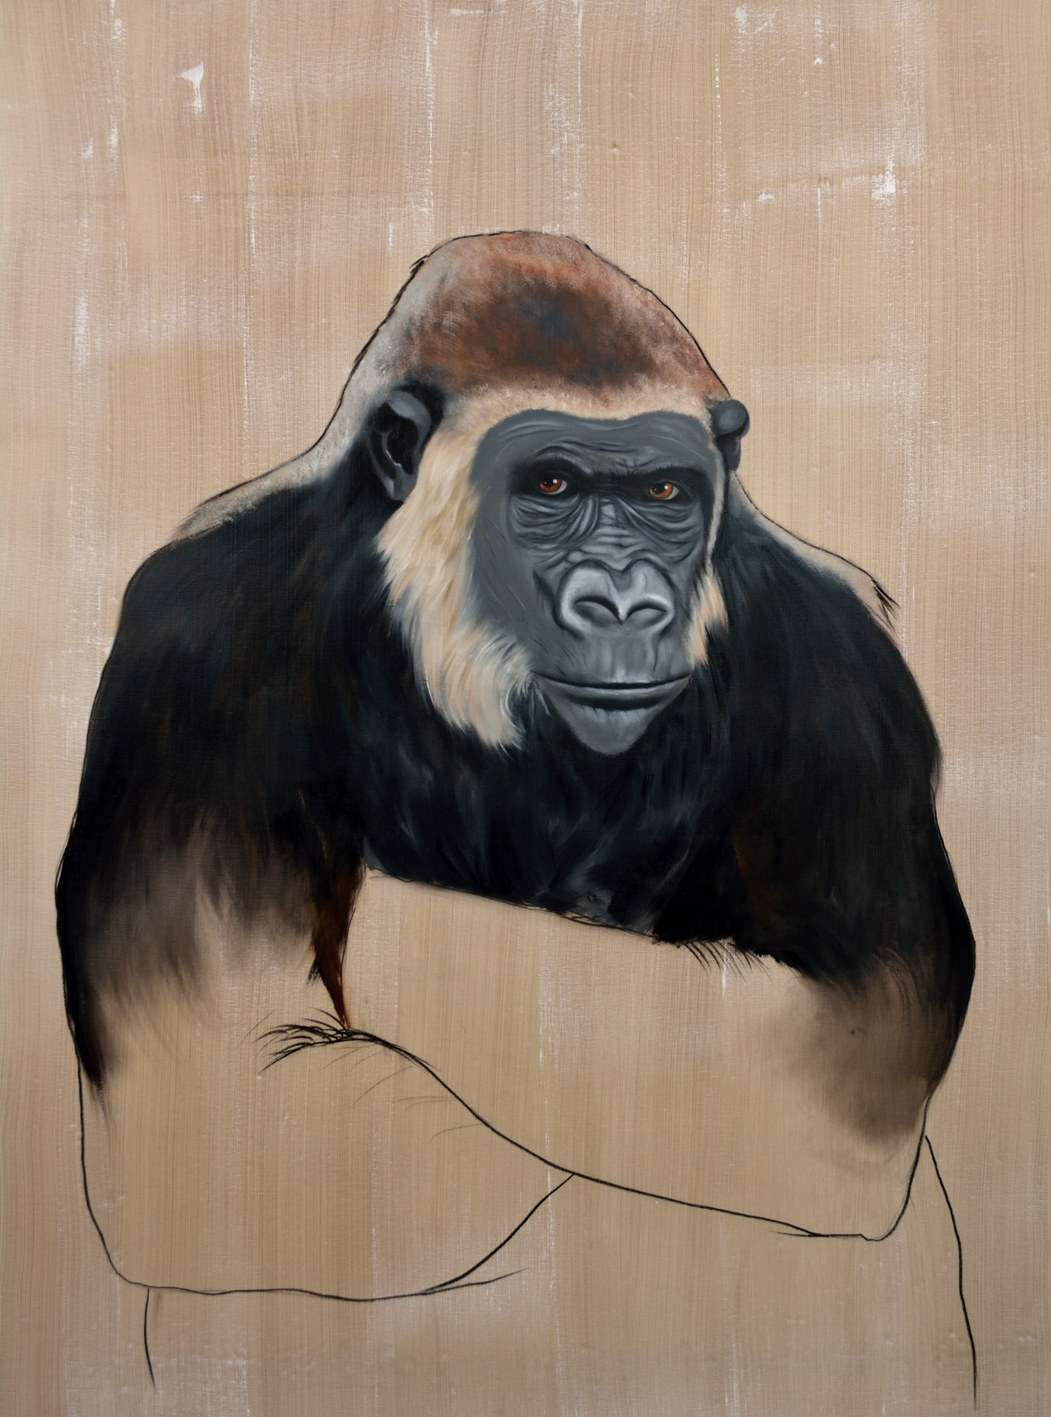 GORILLA-Gorilla GORILLA-SILVERBACK Thierry Bisch painter animals painting art decoration hotel design interior luxury nature biodiversity conservation